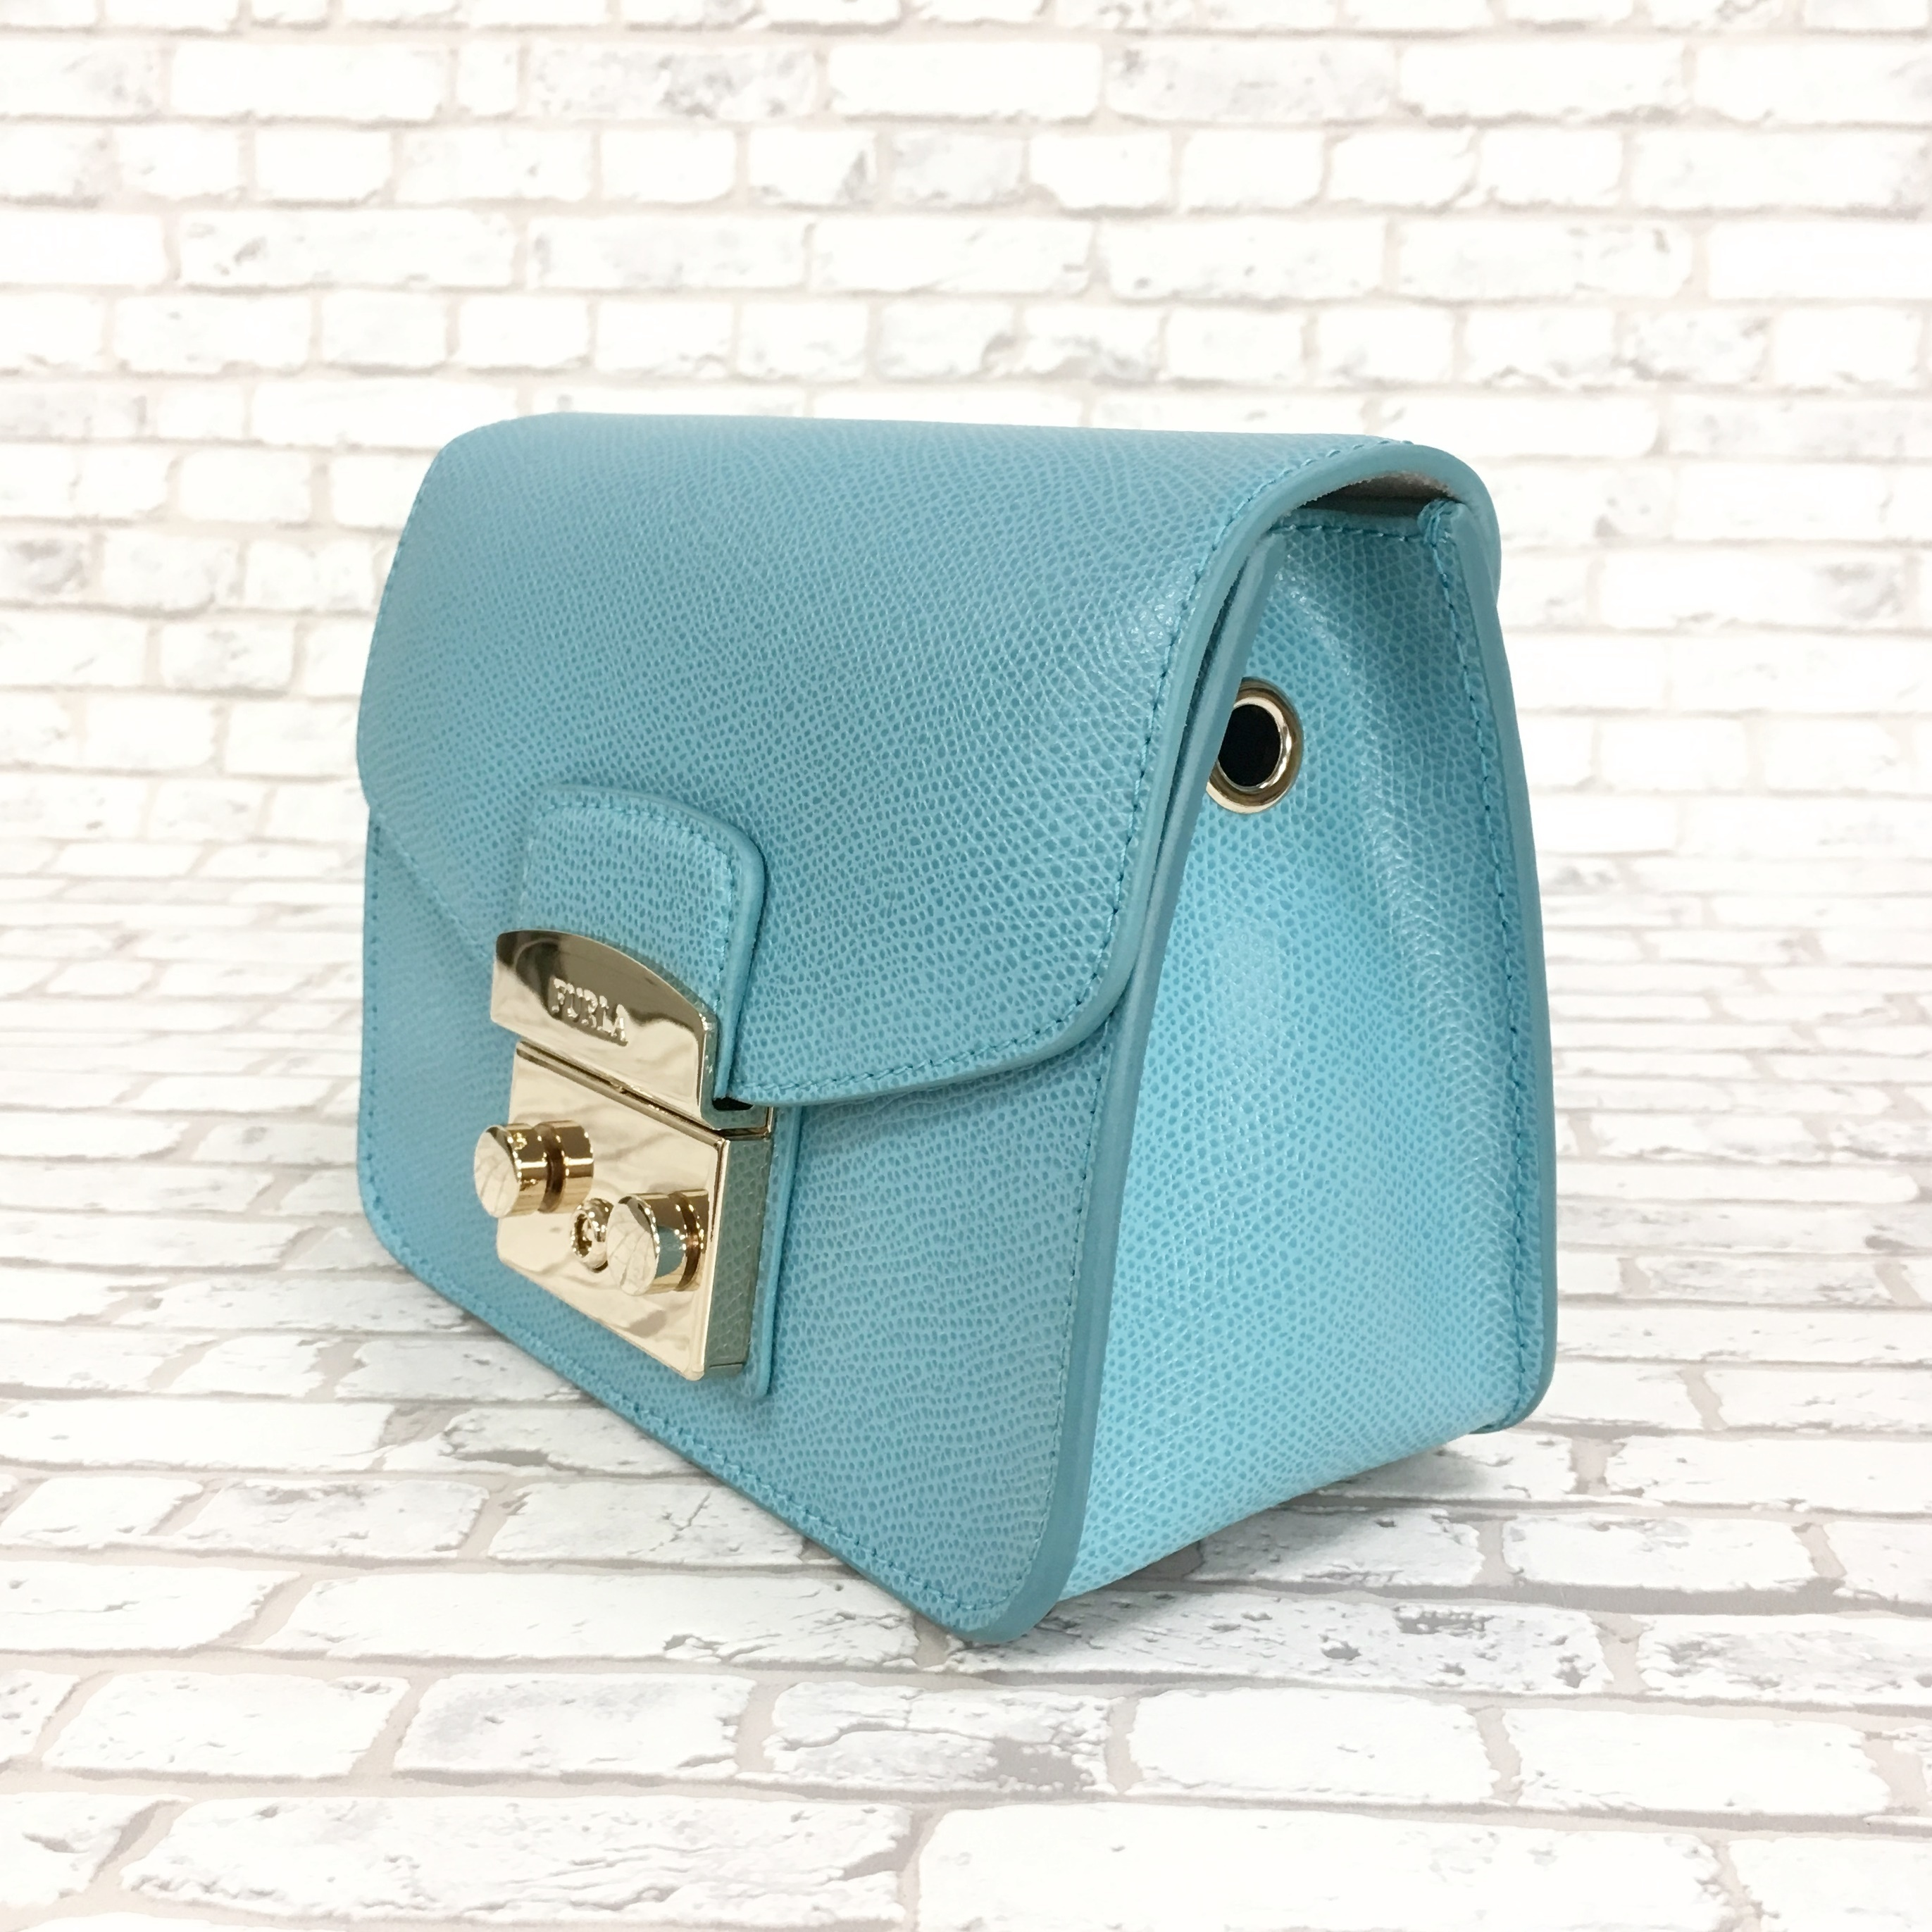 【FURLA】Metropolis Mini Crossbody【大人気!!】